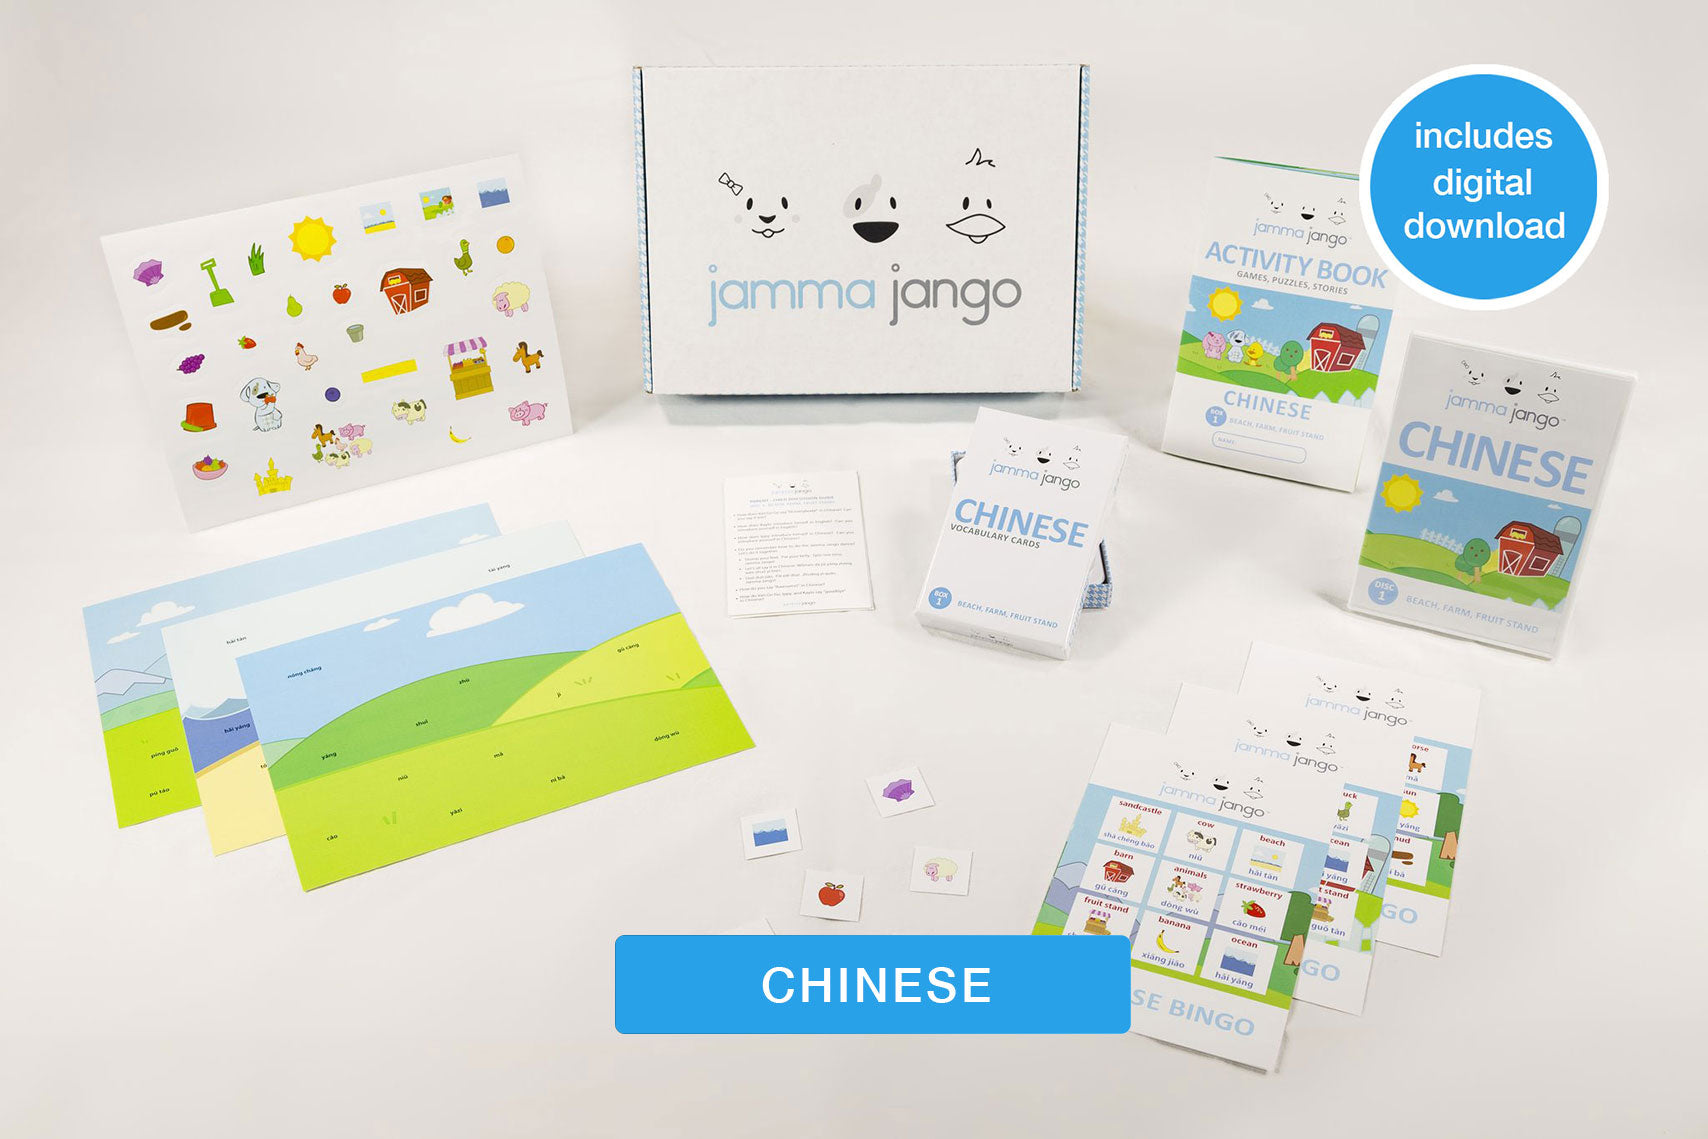 Photo showing materials and the digital download in Jamma Jango's kit for Mandarin for kids.